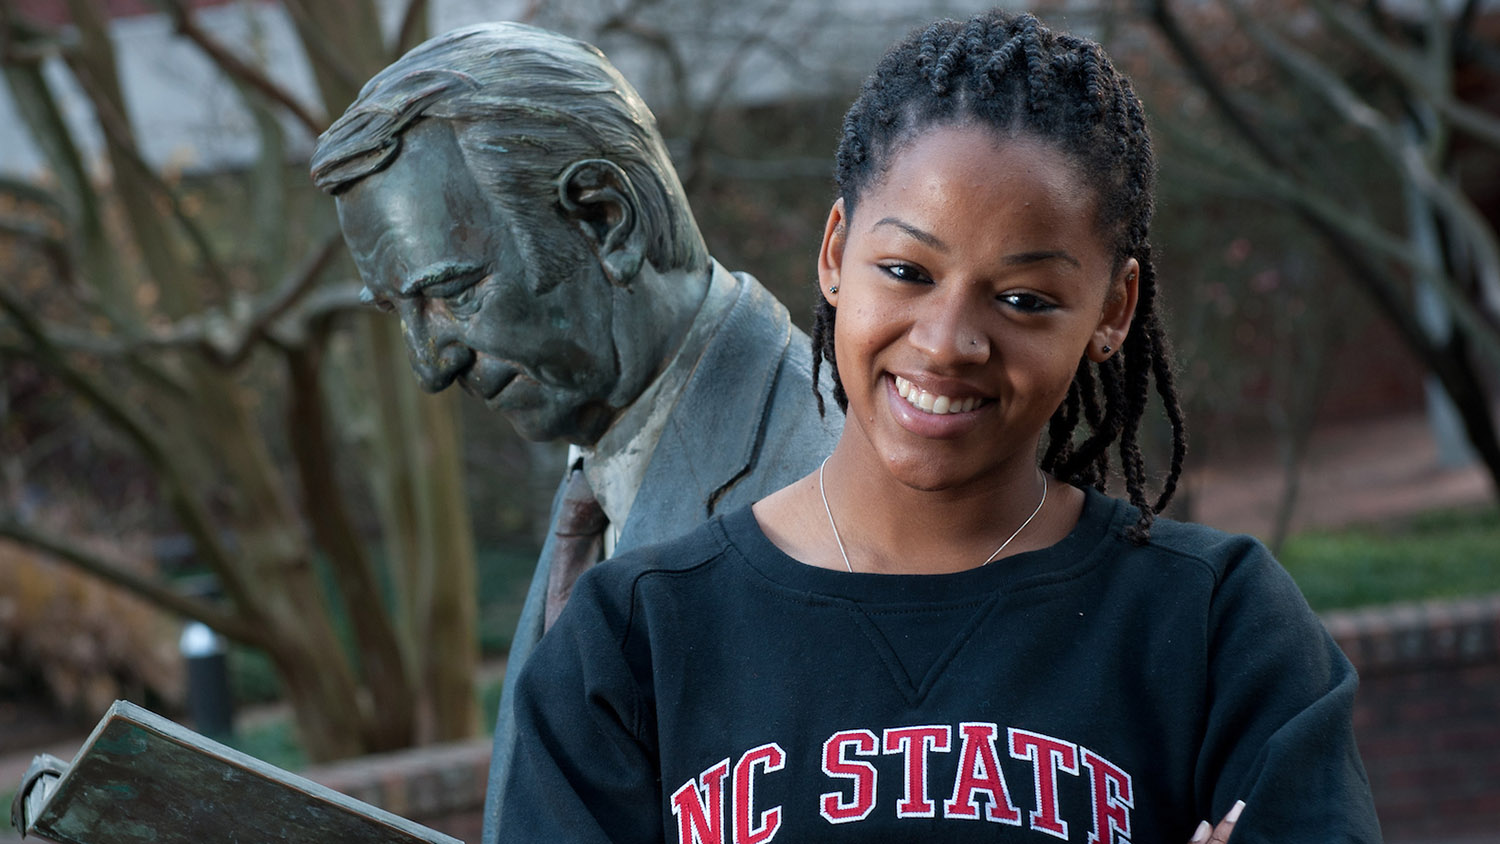 Student on Campus - CNR Virtual Admitted Student Event - College of Natural Resources NCState University